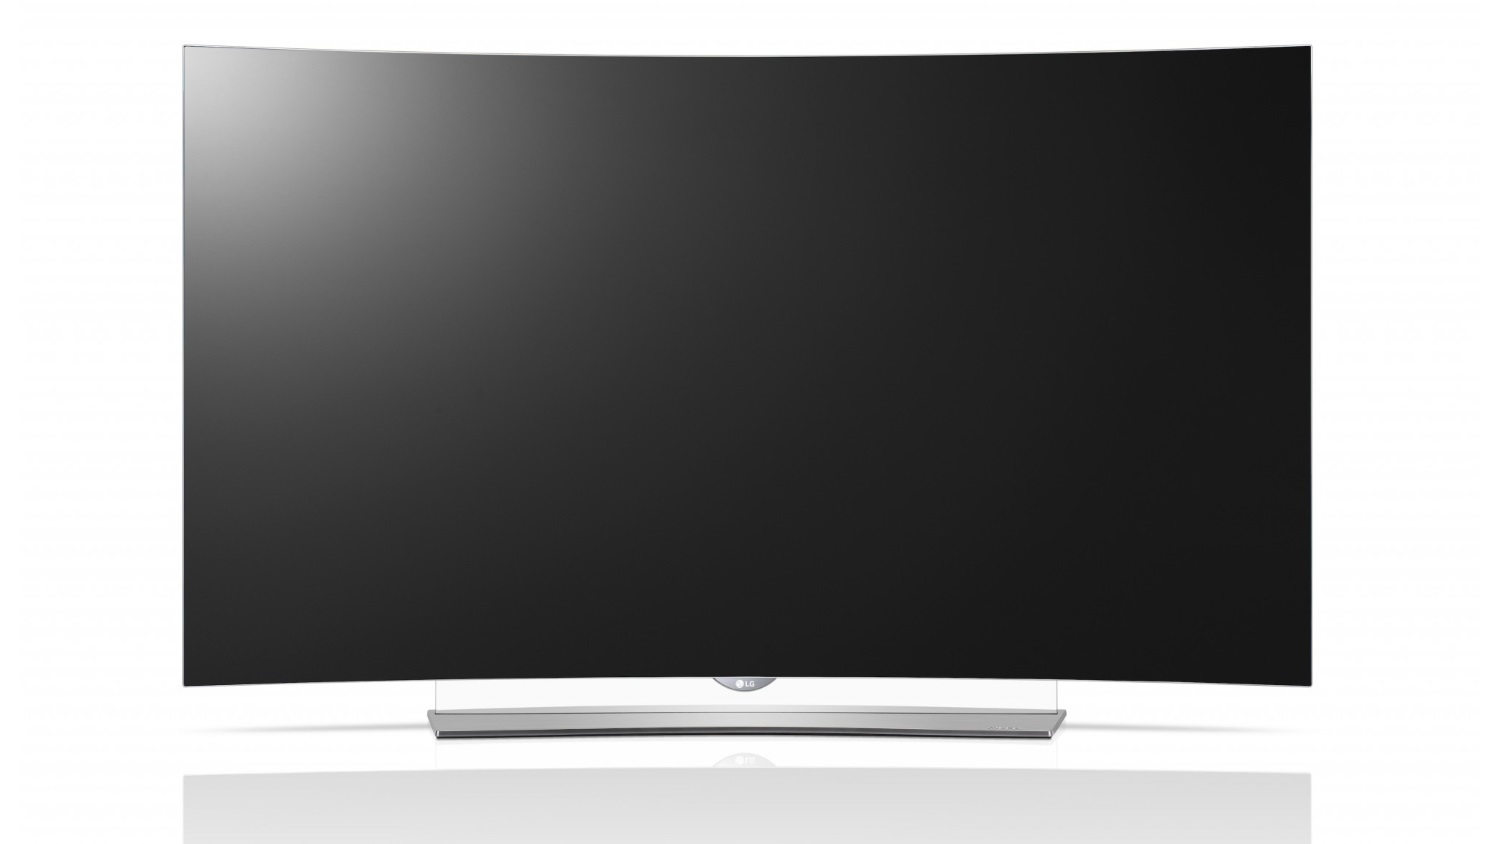 LG OLED TV com base transparente